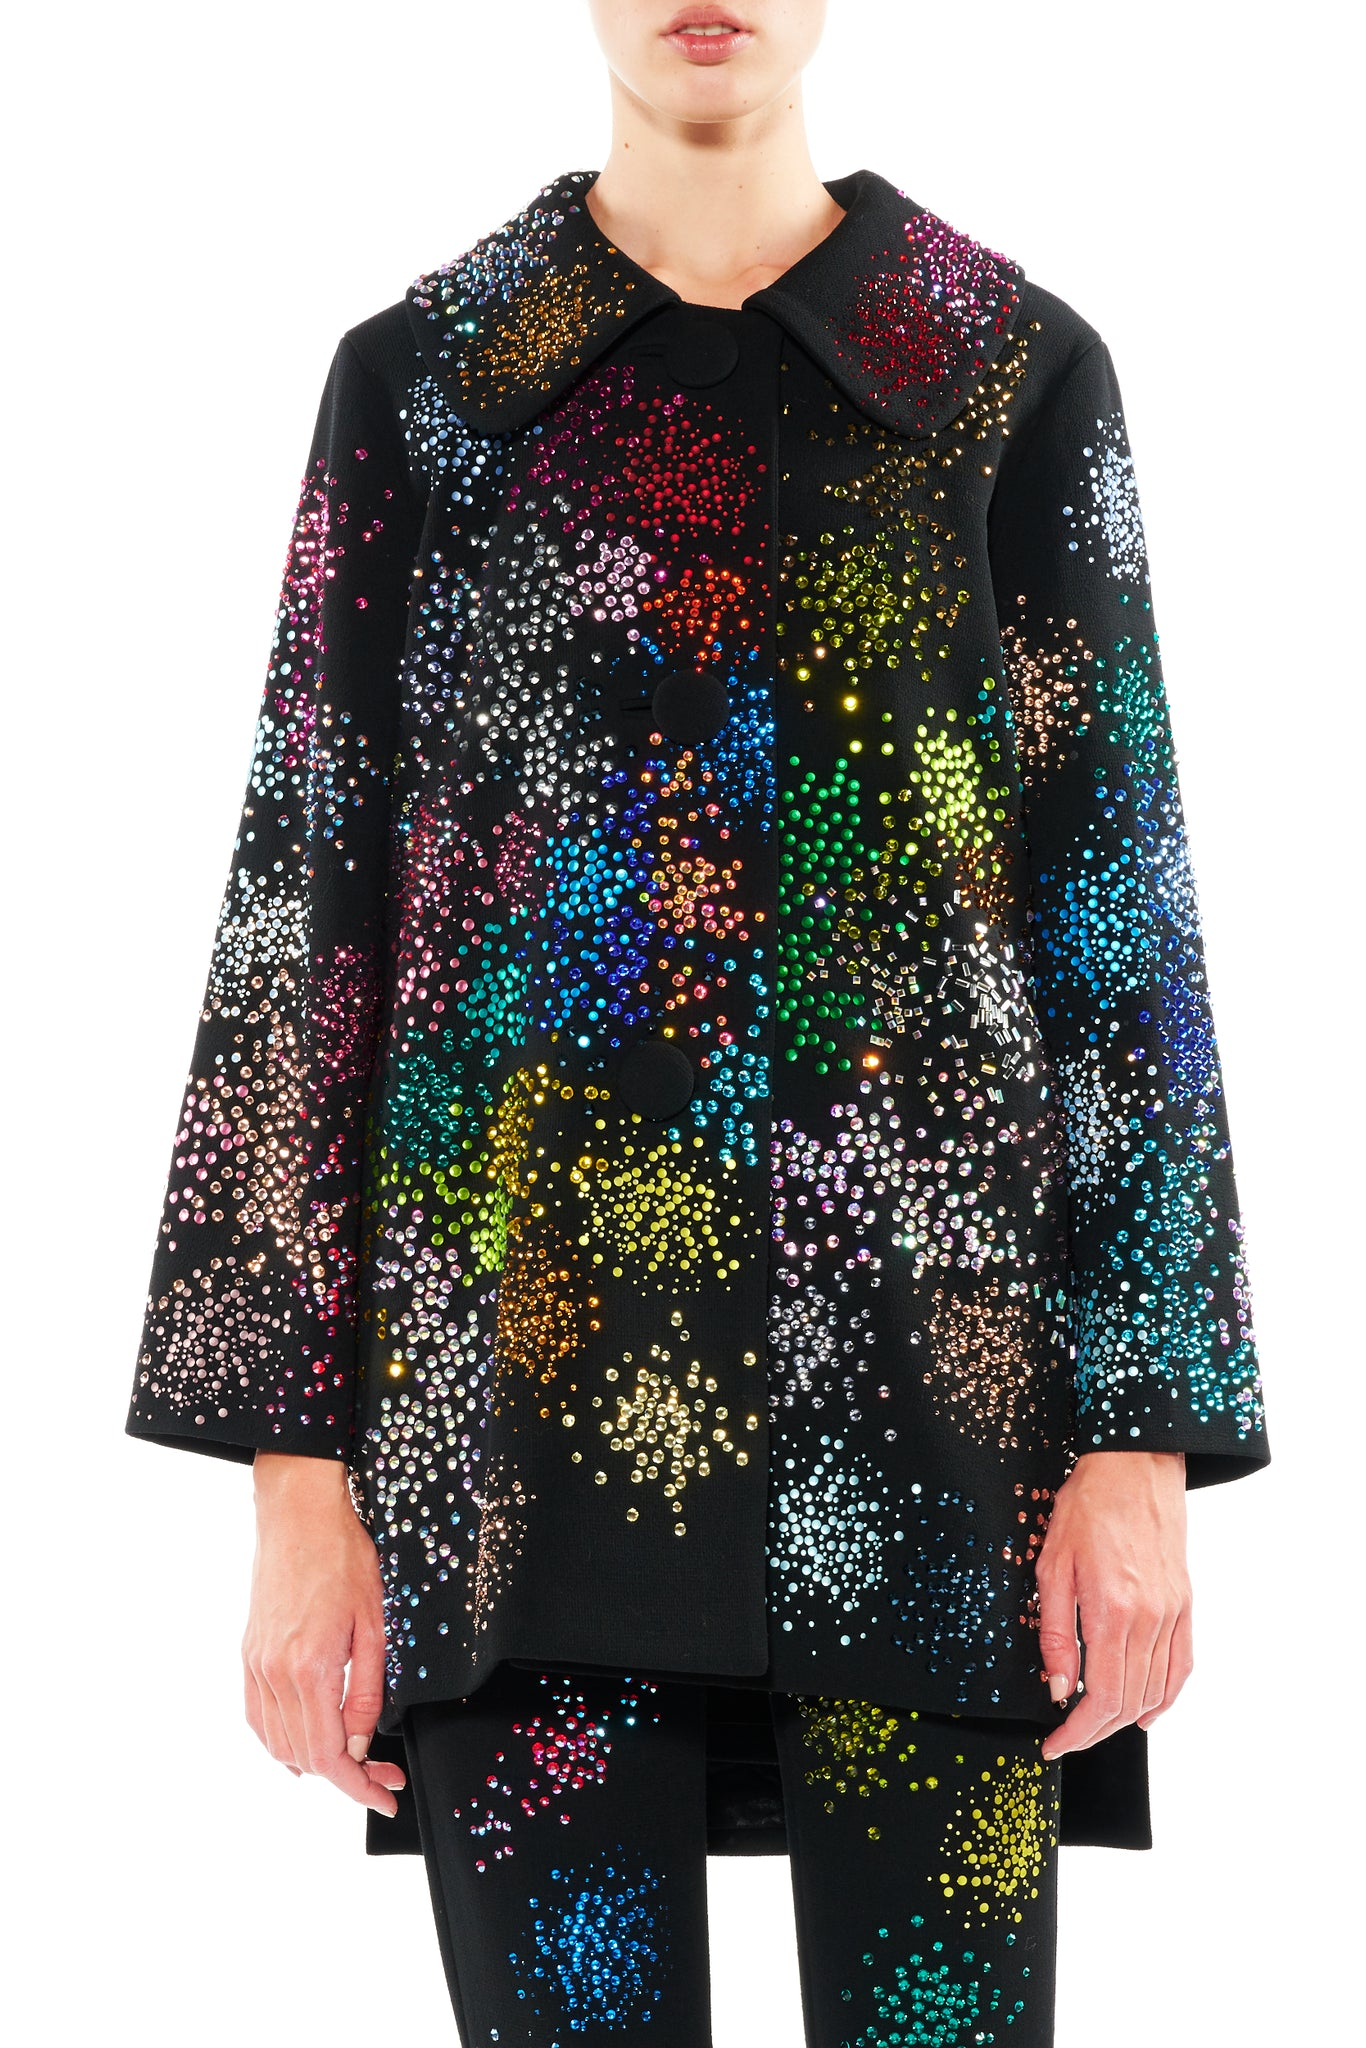 """MO' MONET MO' PROBLEMS"" CAPE COAT - Women's Jackets & Coats - Libertine"